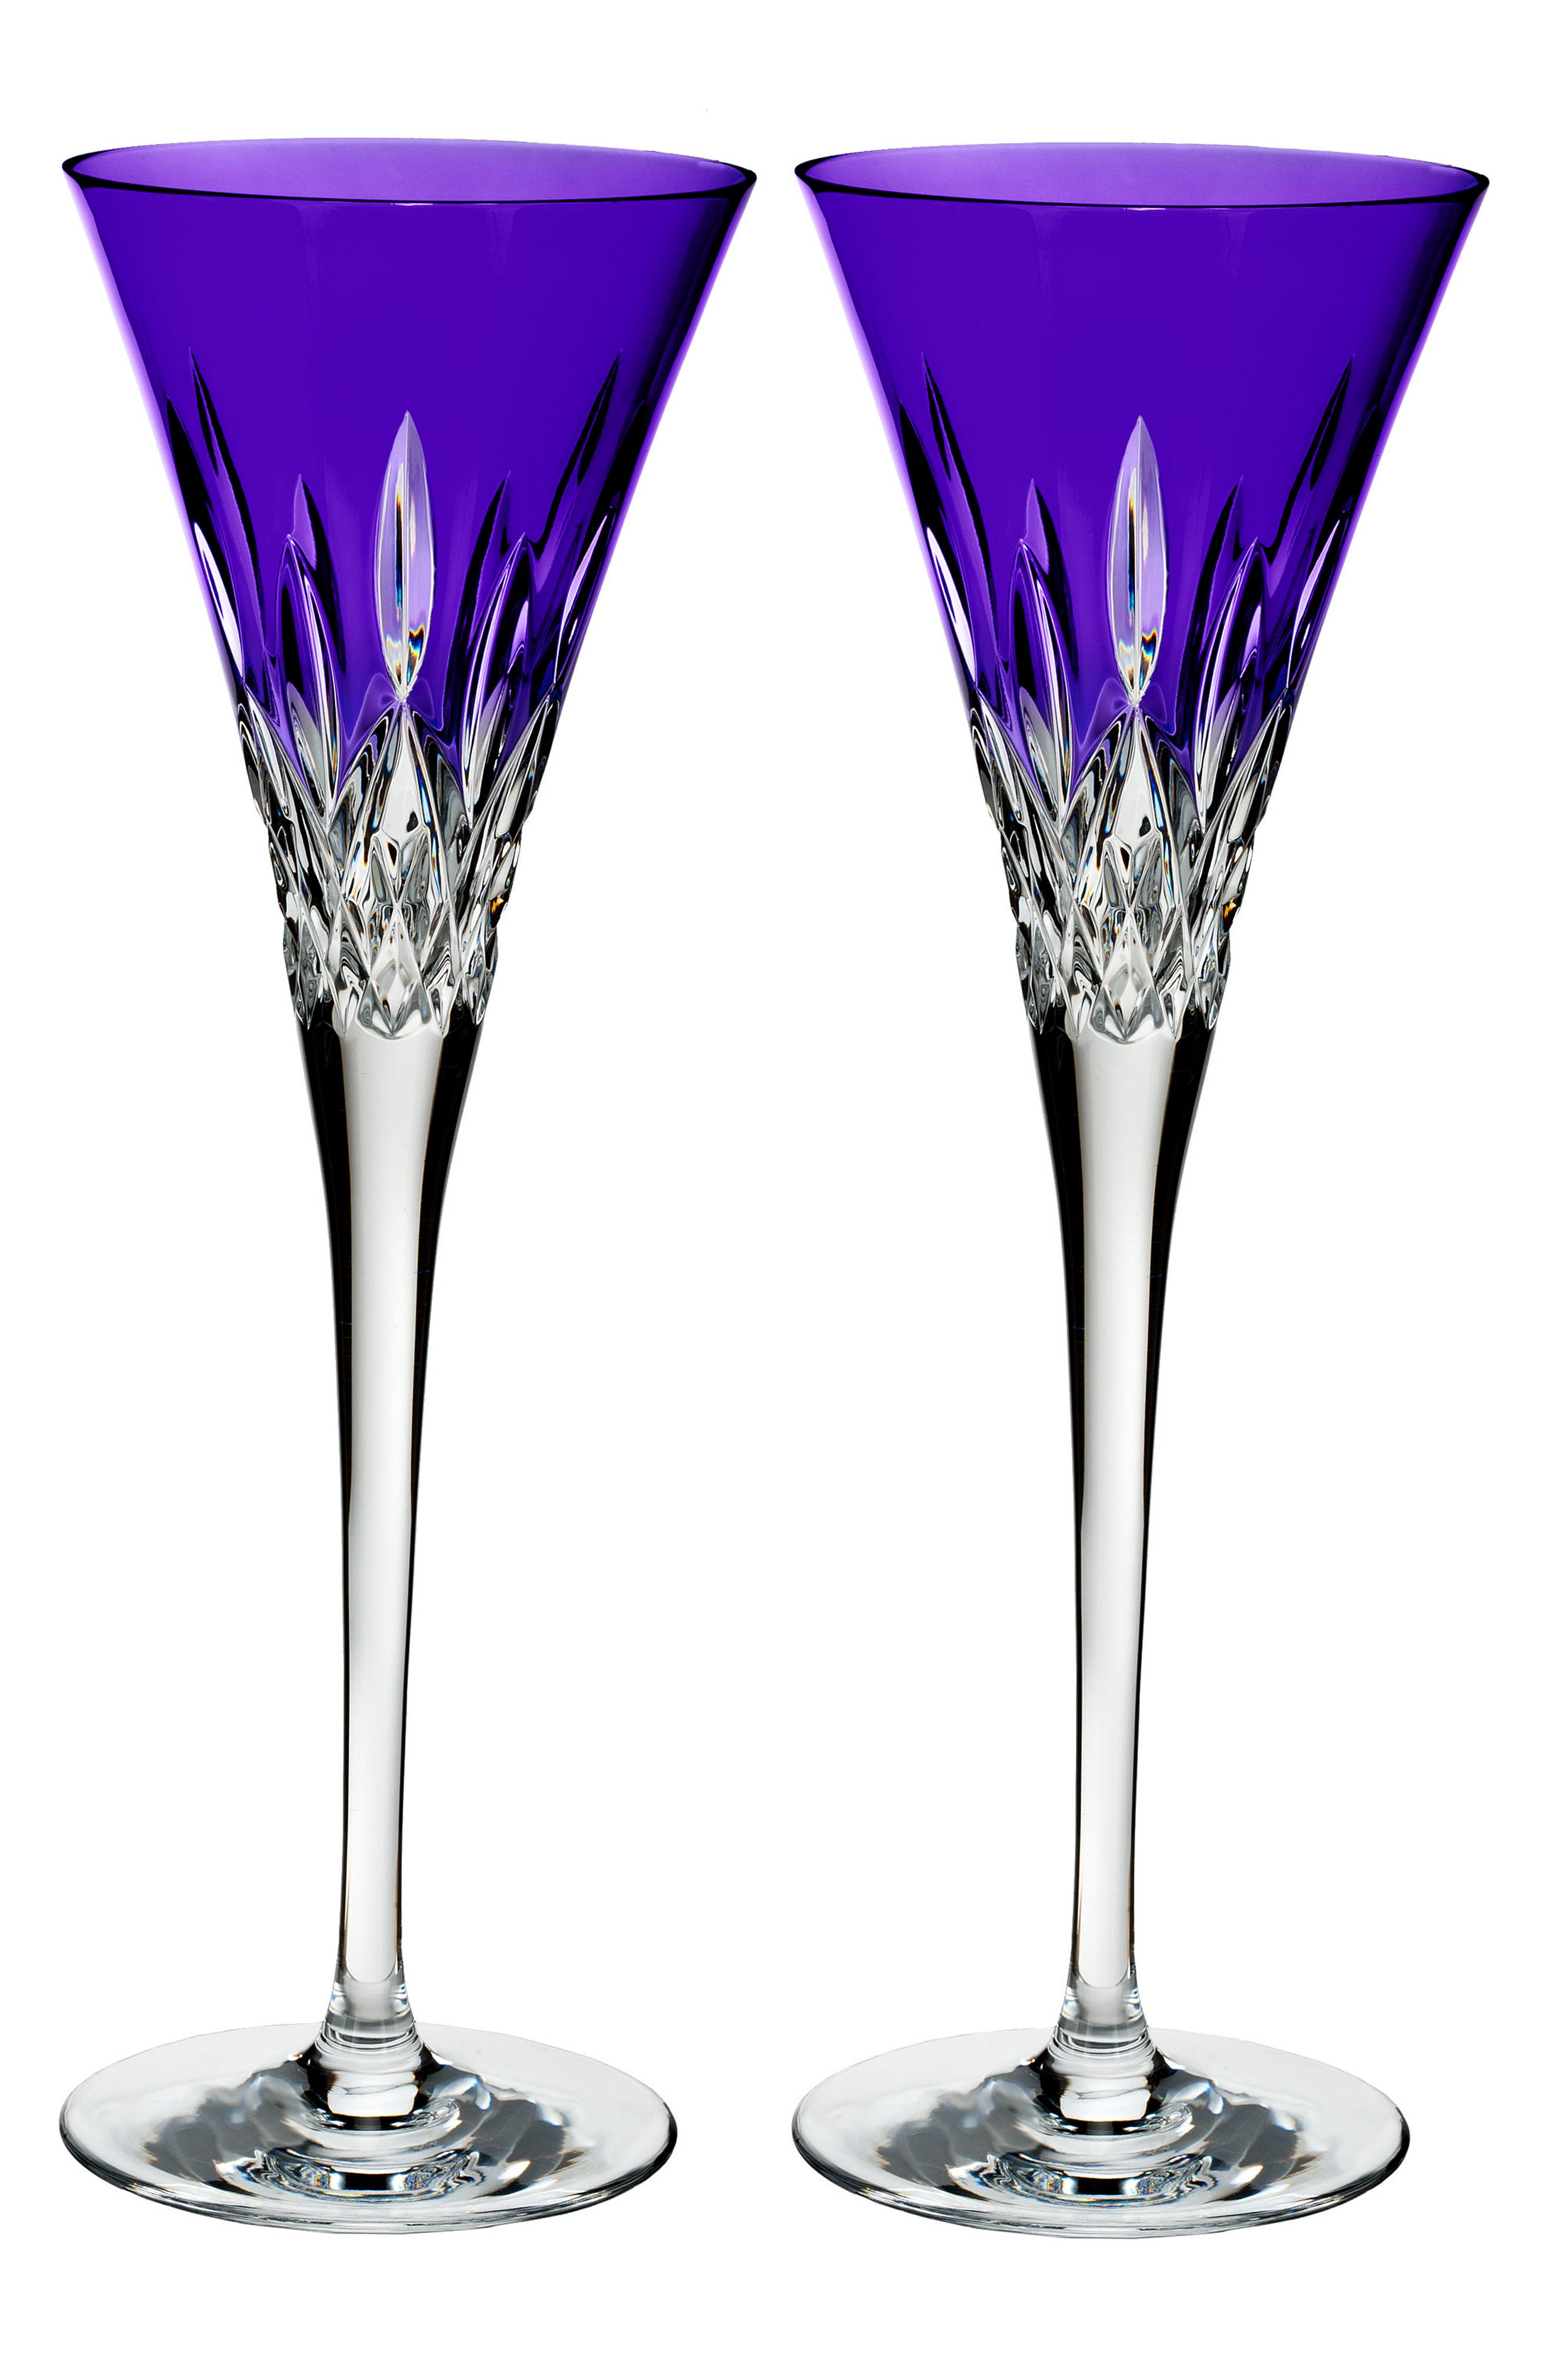 Main Image - Waterford Lismore Pops Set of 2 Purple Lead Crystal Champagne Flutes